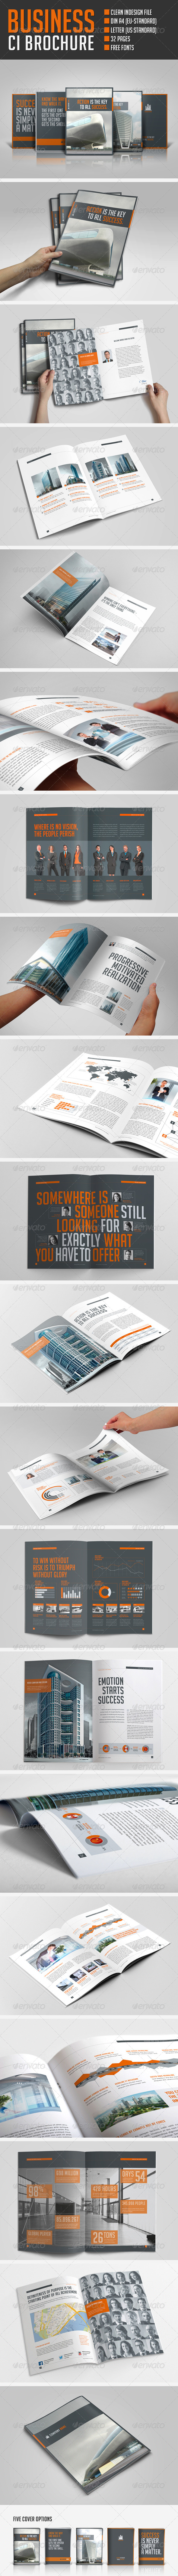 GraphicRiver Business Brochure 5659872